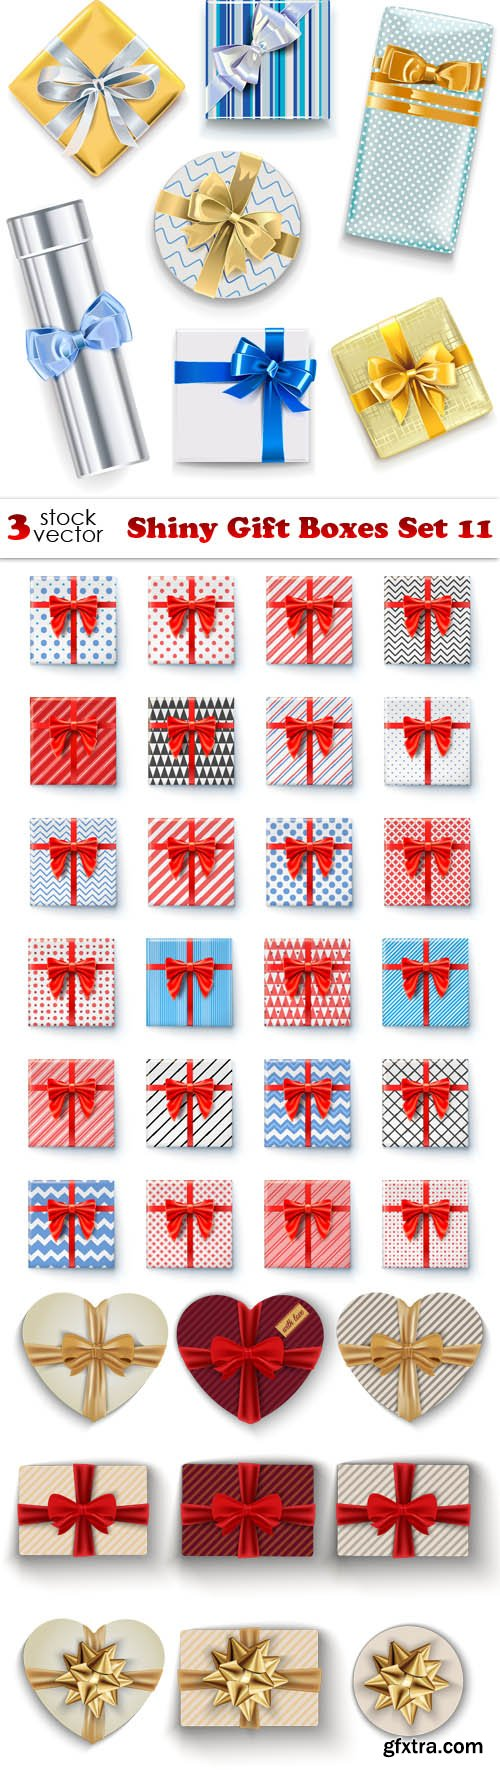 Vectors - Shiny Gift Boxes Set 11